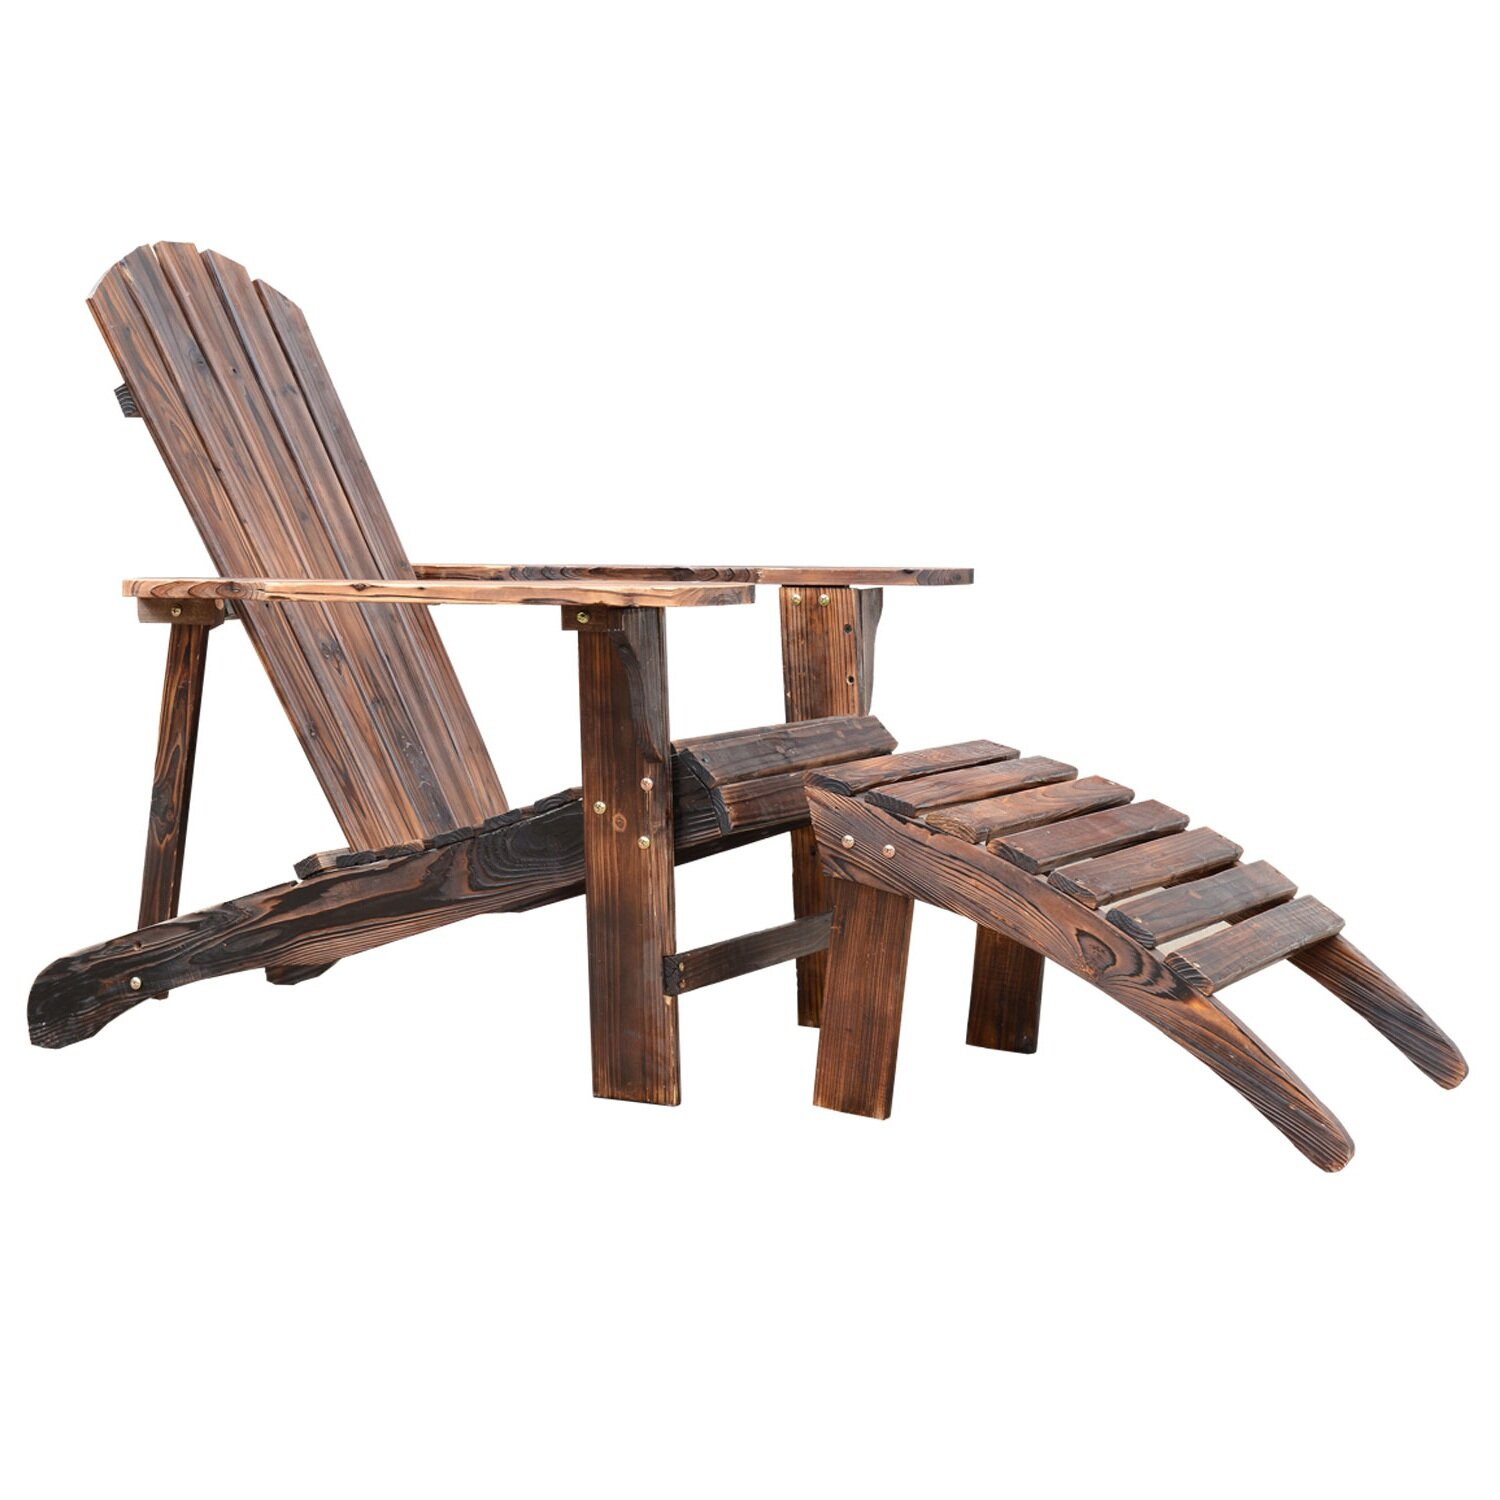 adirondack best foldable w pull products patio chair choice outdoor bcp deck itm wood out ottoman furniture chairs